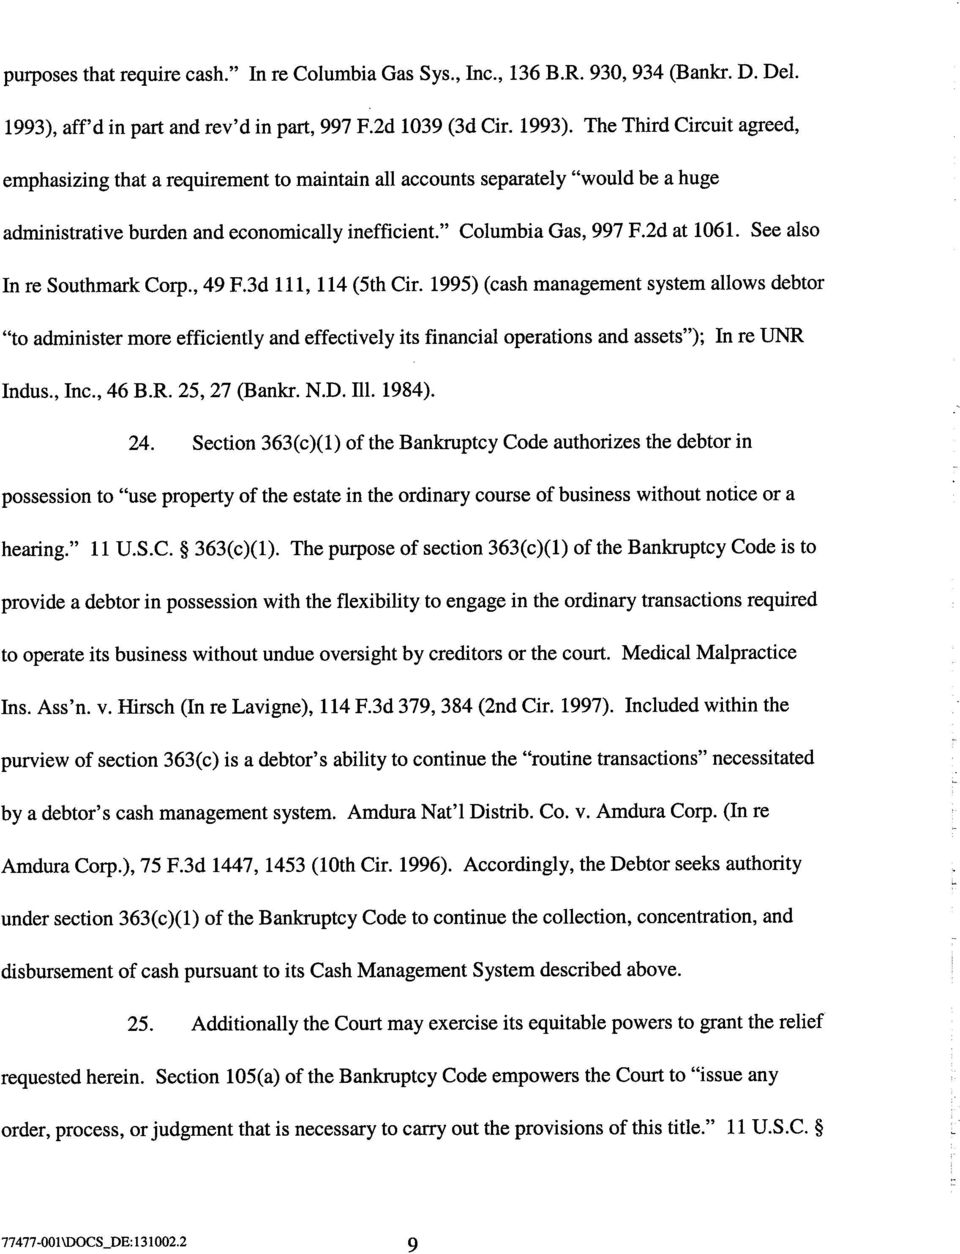 "The Third Circuit agreed, emphasizing that a requirement to maintain all accounts separately ""would be a huge admnistrative burden and economically inefficient."" Columbia Gas, 997 F.2d at 1061."